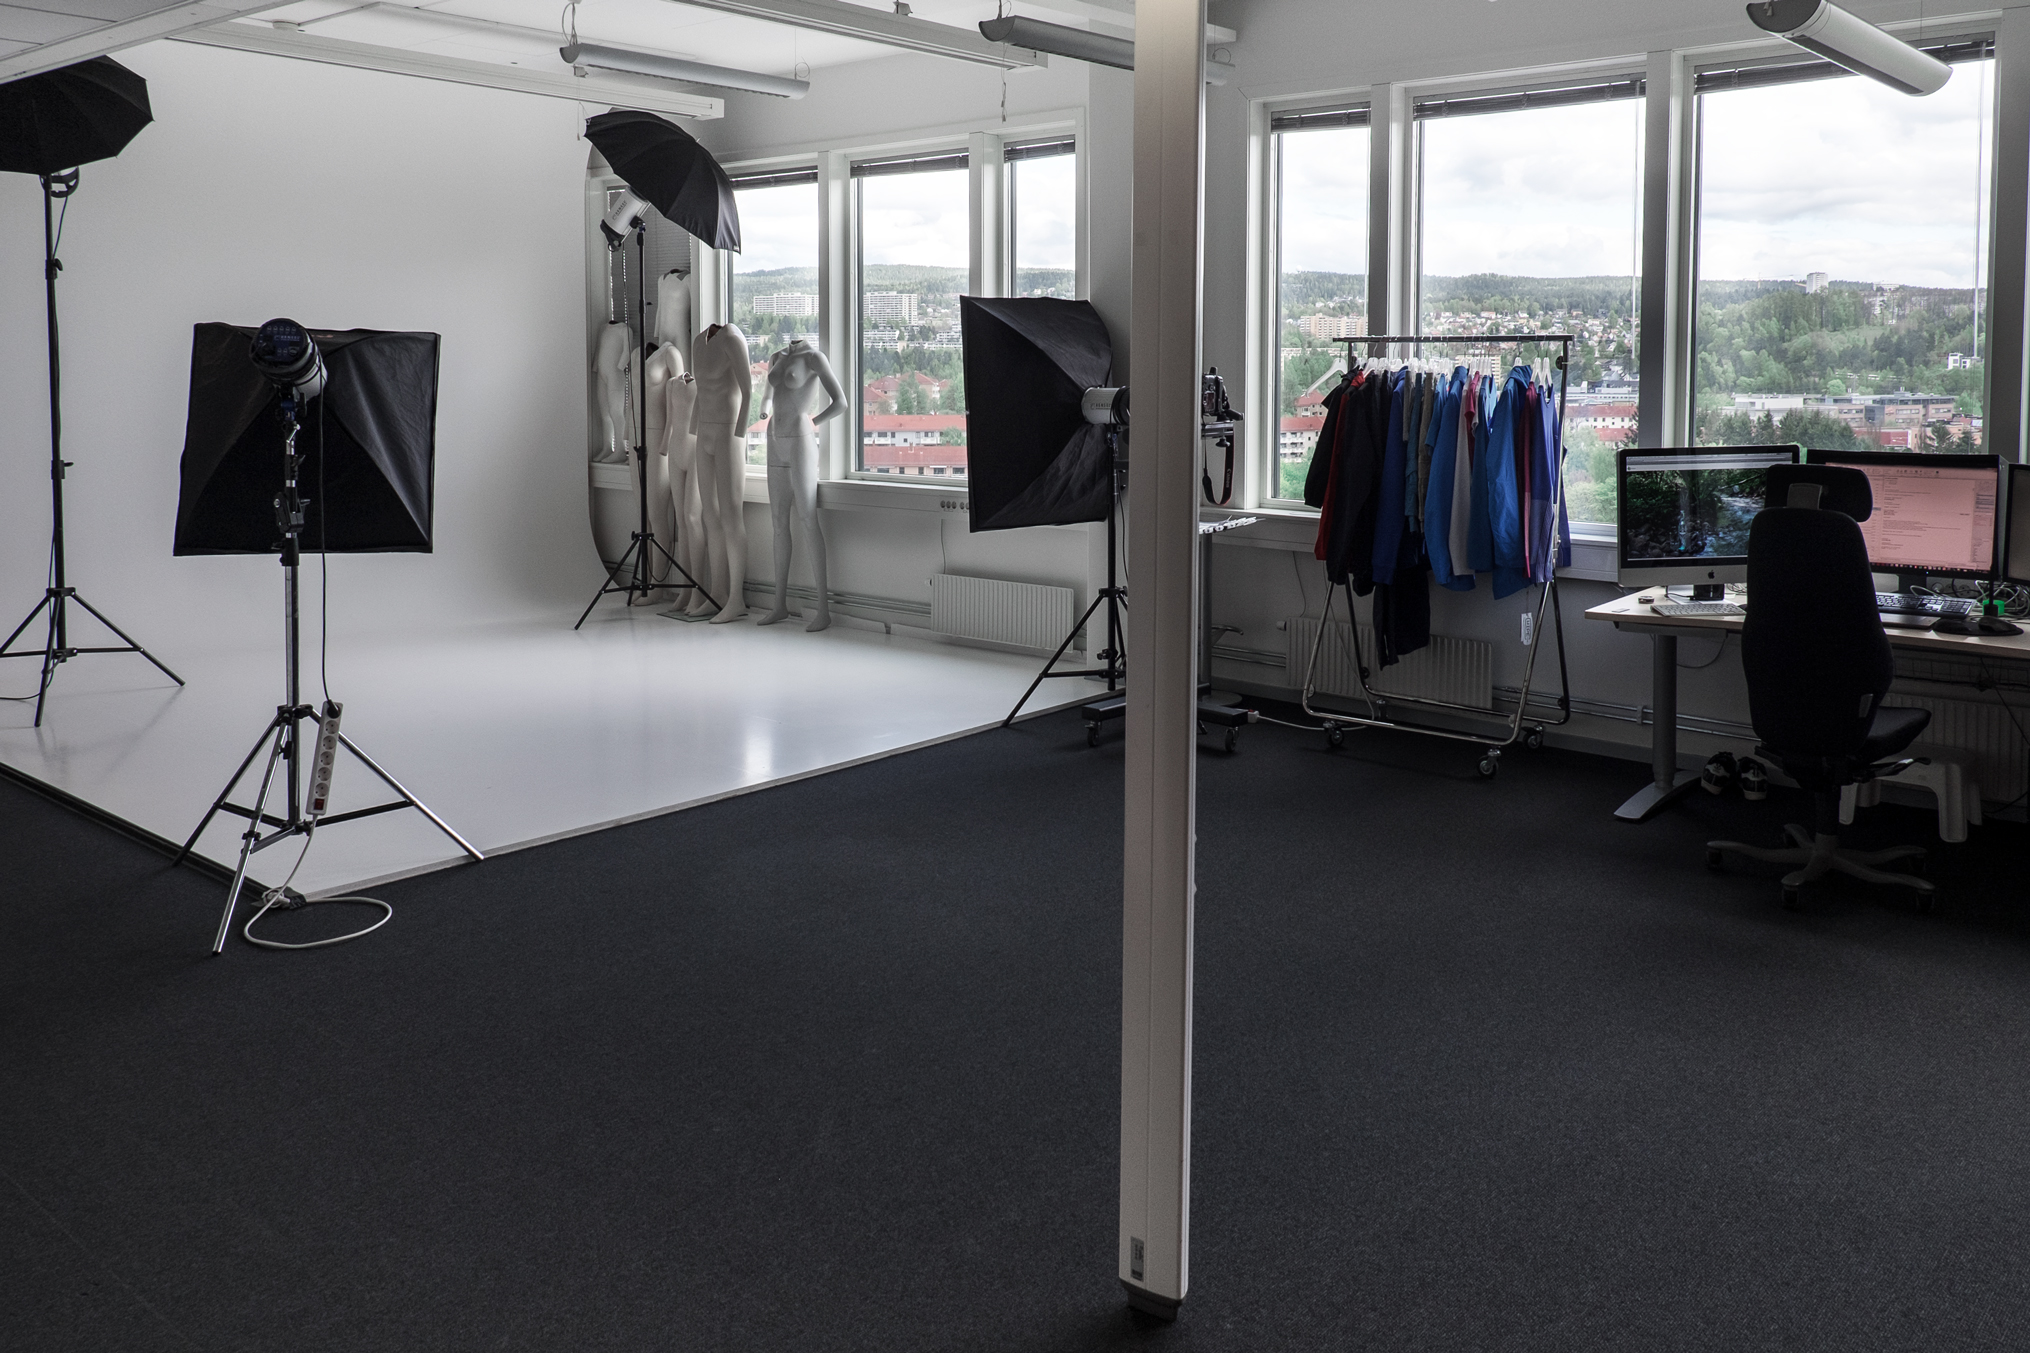 The studio walls are supplied and manufactured by Rune Skogen  studiowalls.no